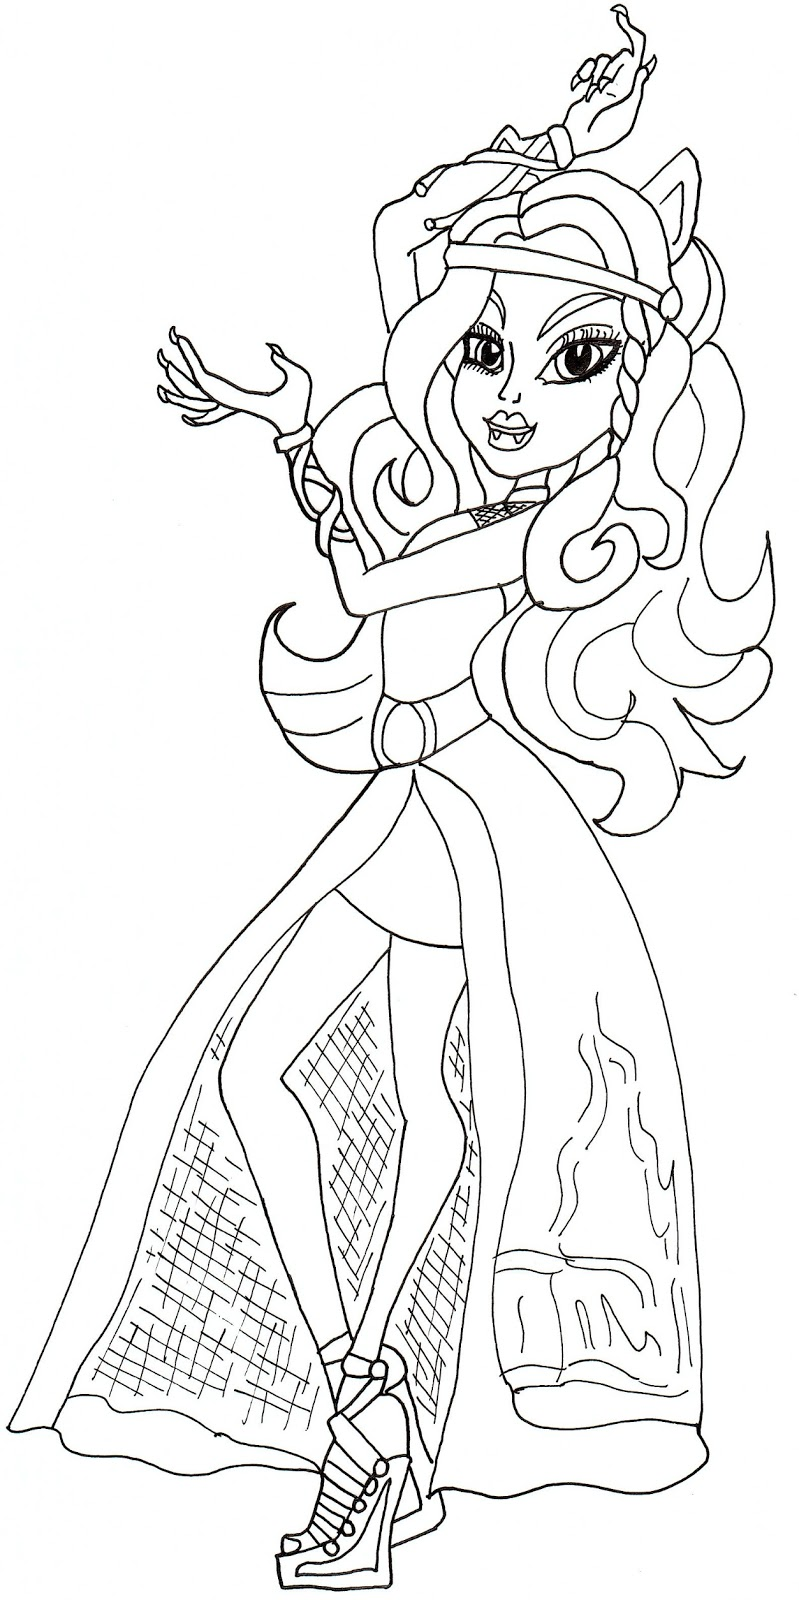 clawdeen haunt the casbah coloring page - Monster High Coloring Pages